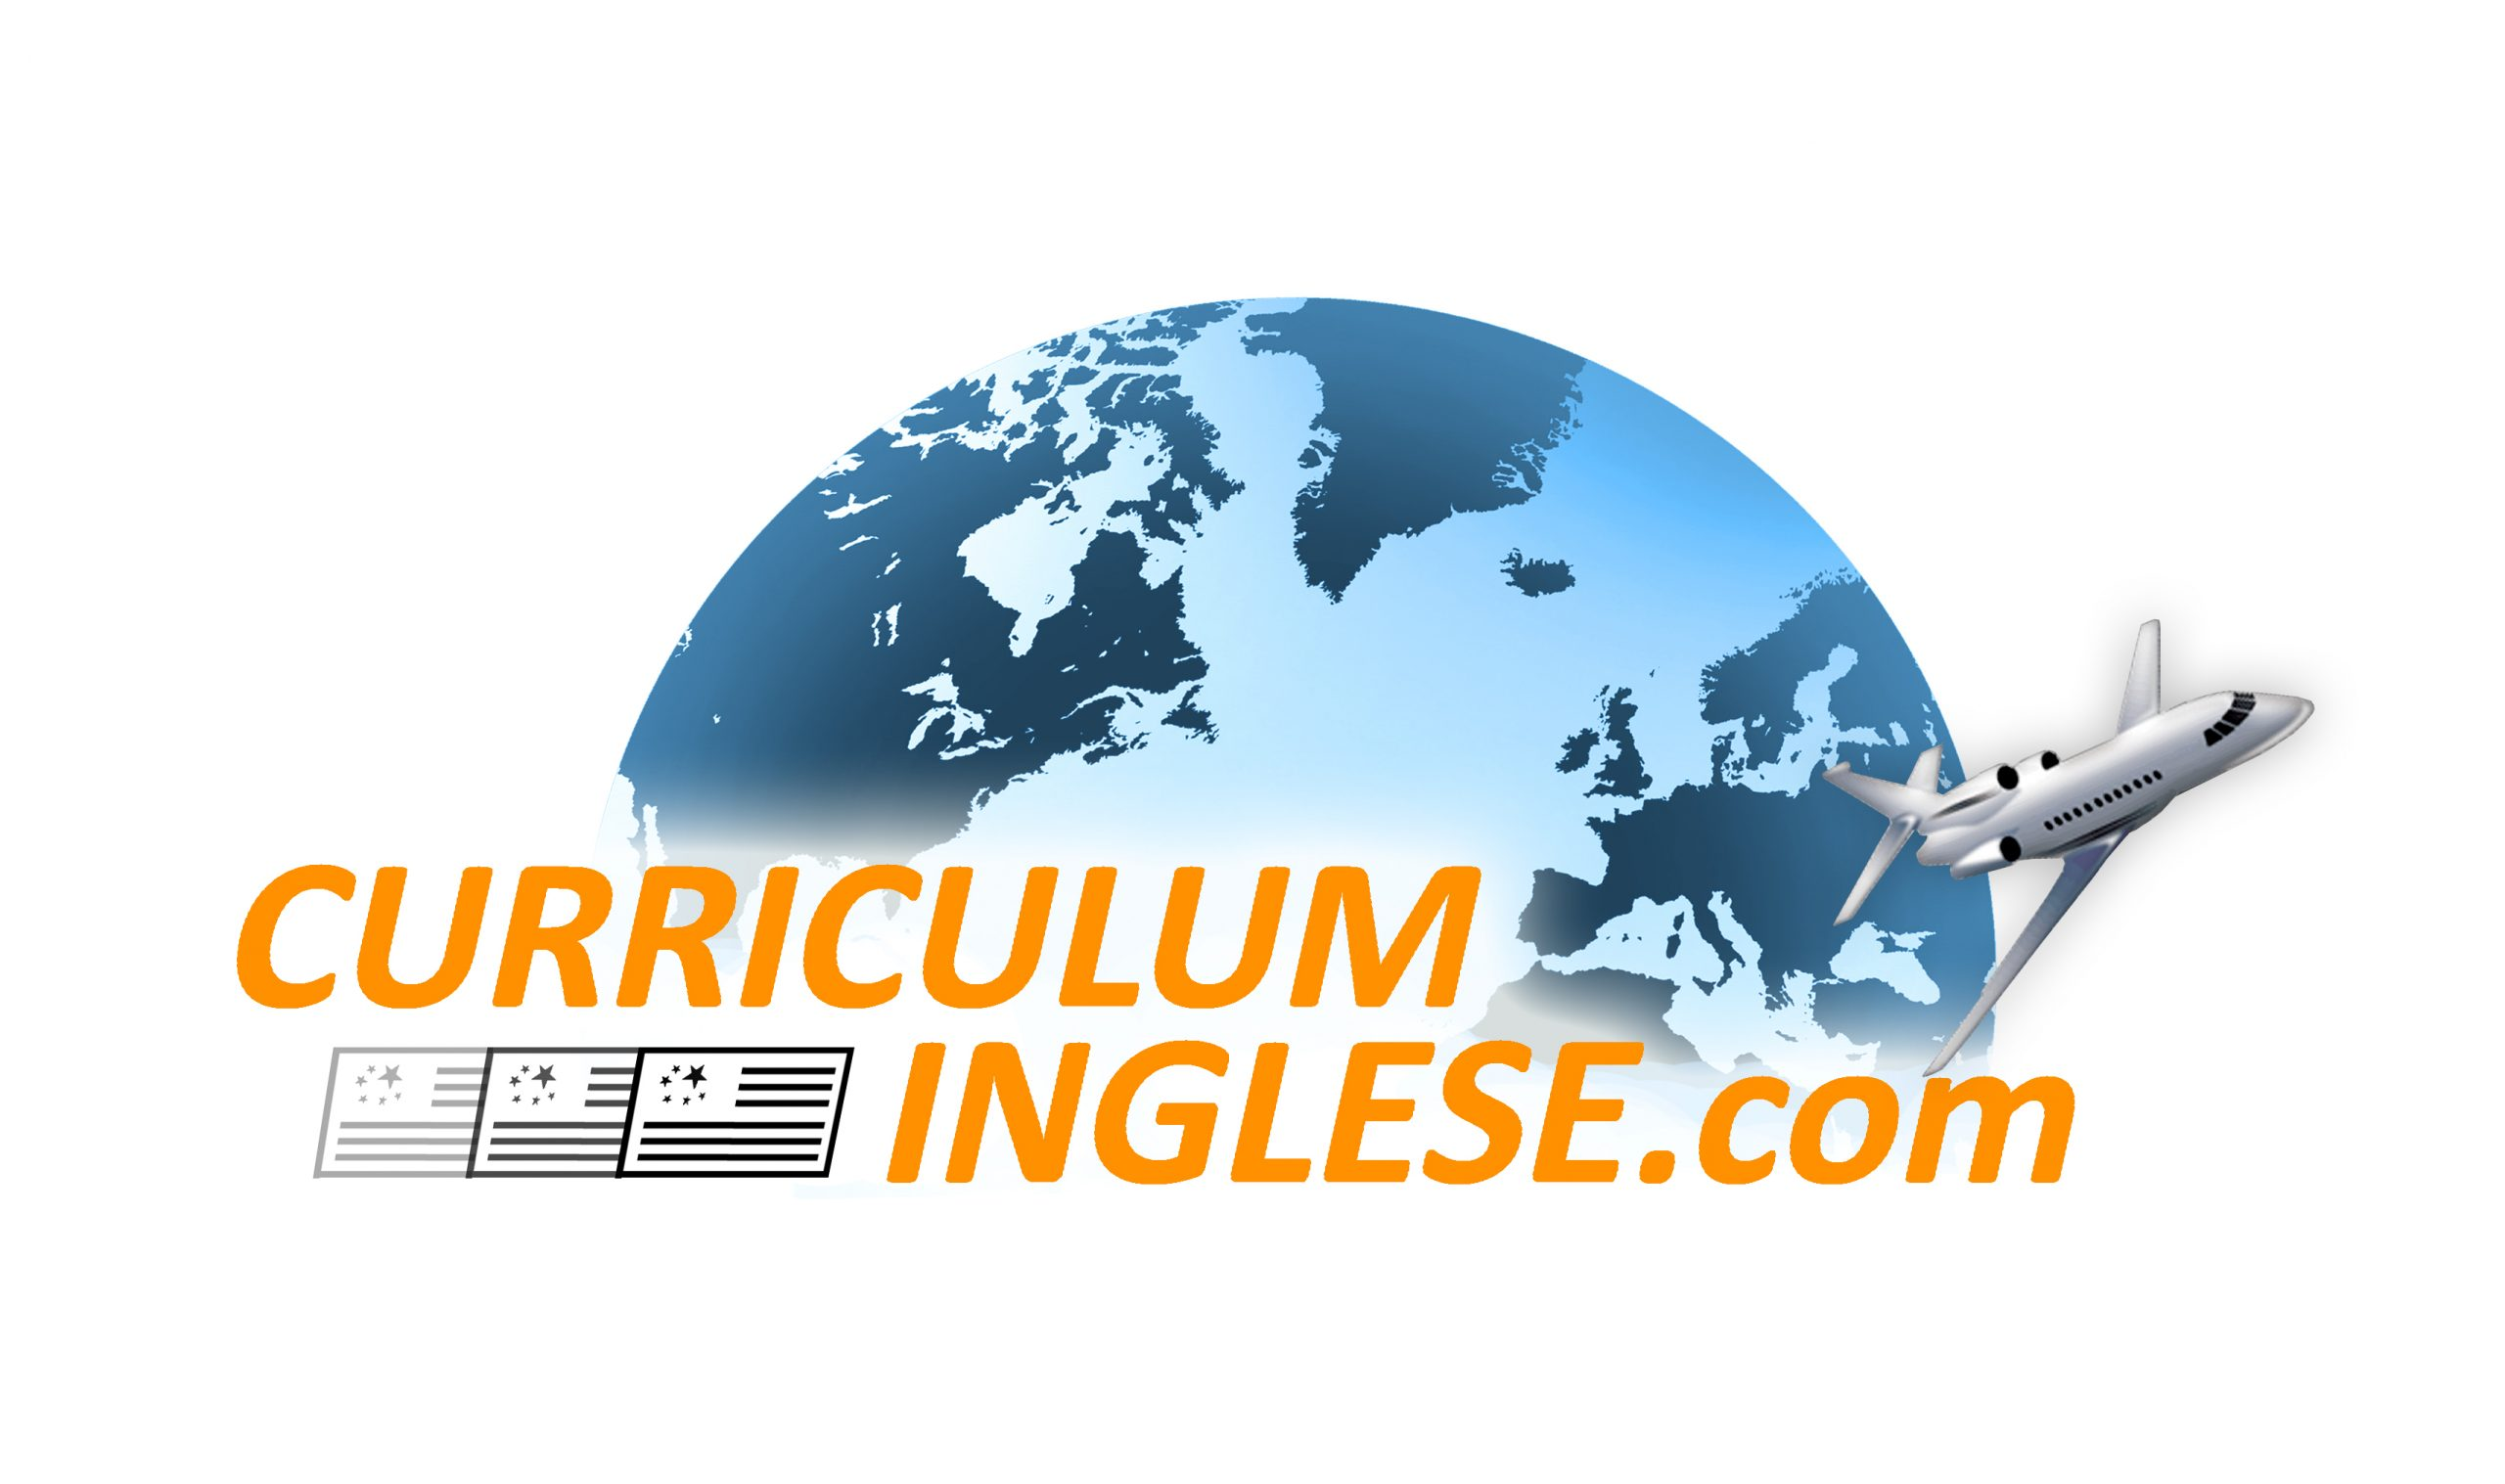 curriculuminglese.com